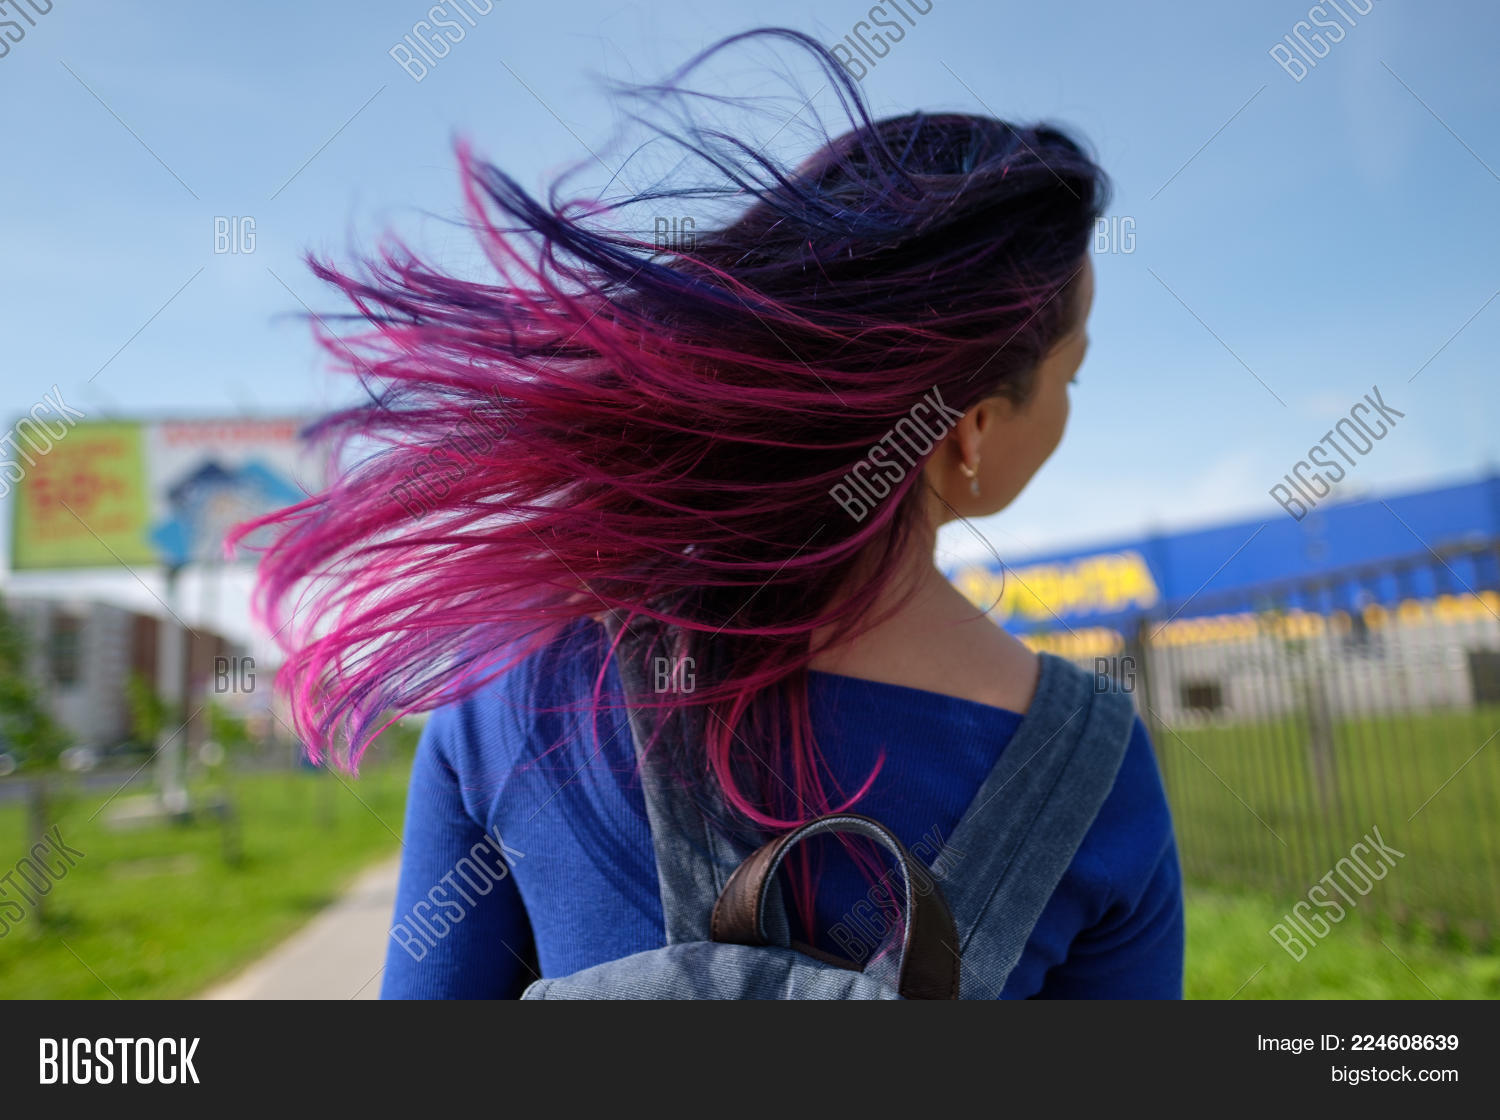 Girls Colored Hair Image Photo Free Trial Bigstock